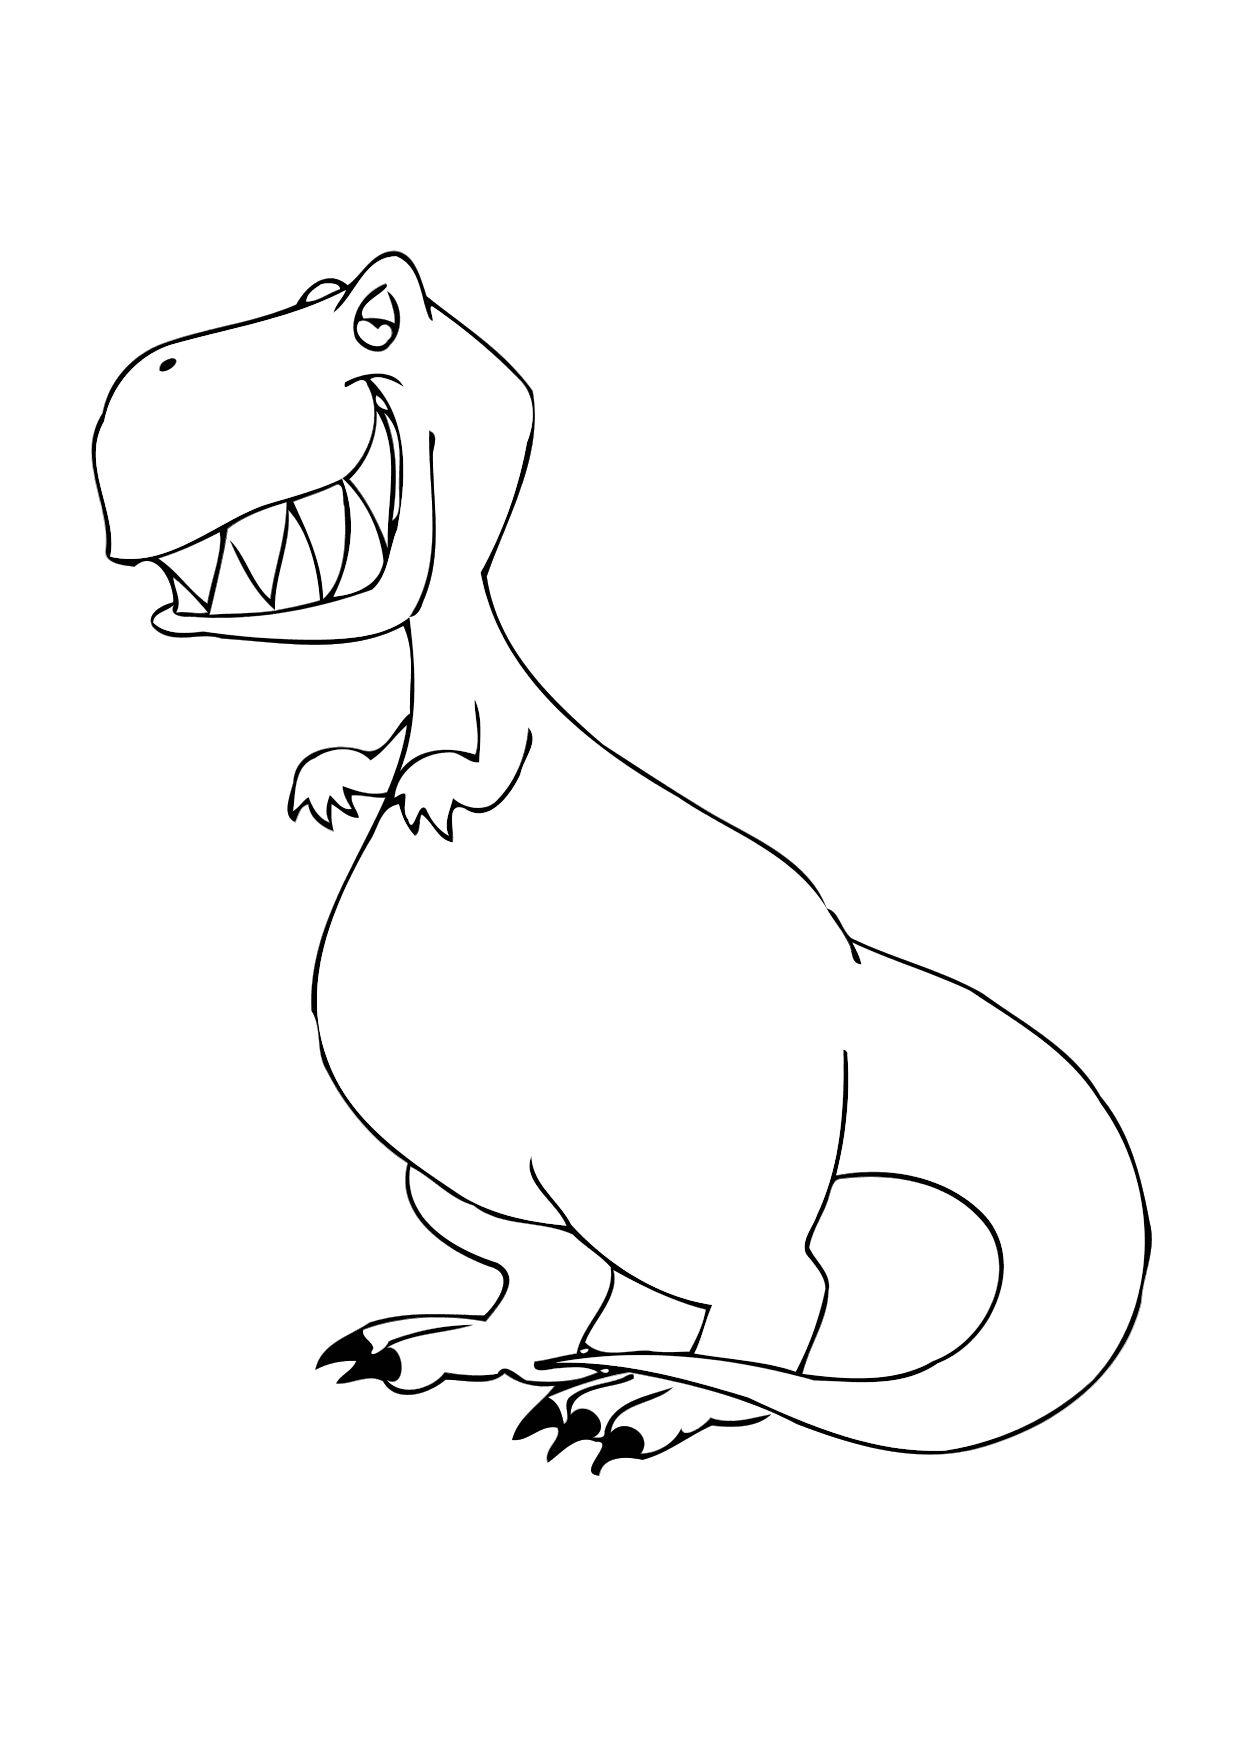 coloring page dinosaur img 12304